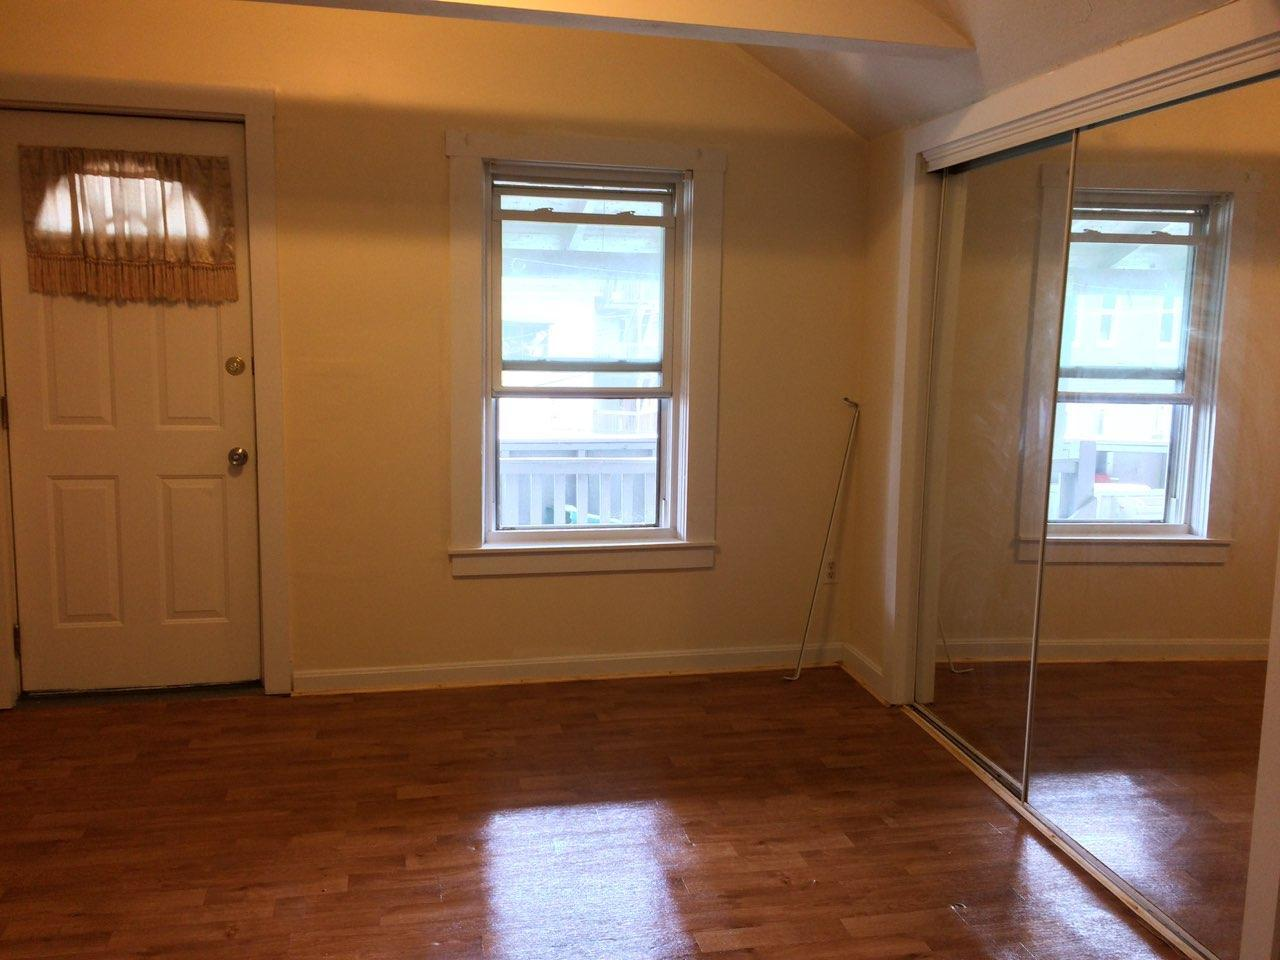 115 Southgate St #2, Worcester, MA 01603 For Rent | Trulia